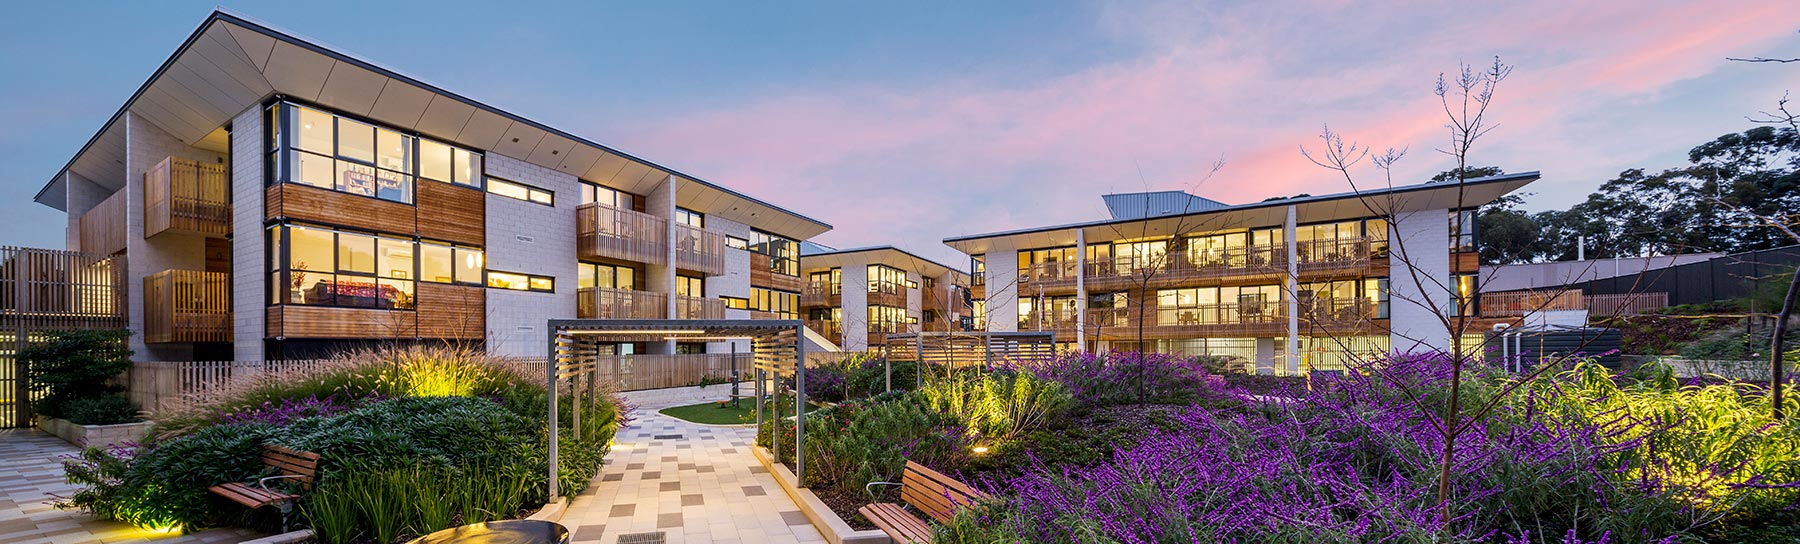 Victoria Grange Retirement Village, VIC Australia